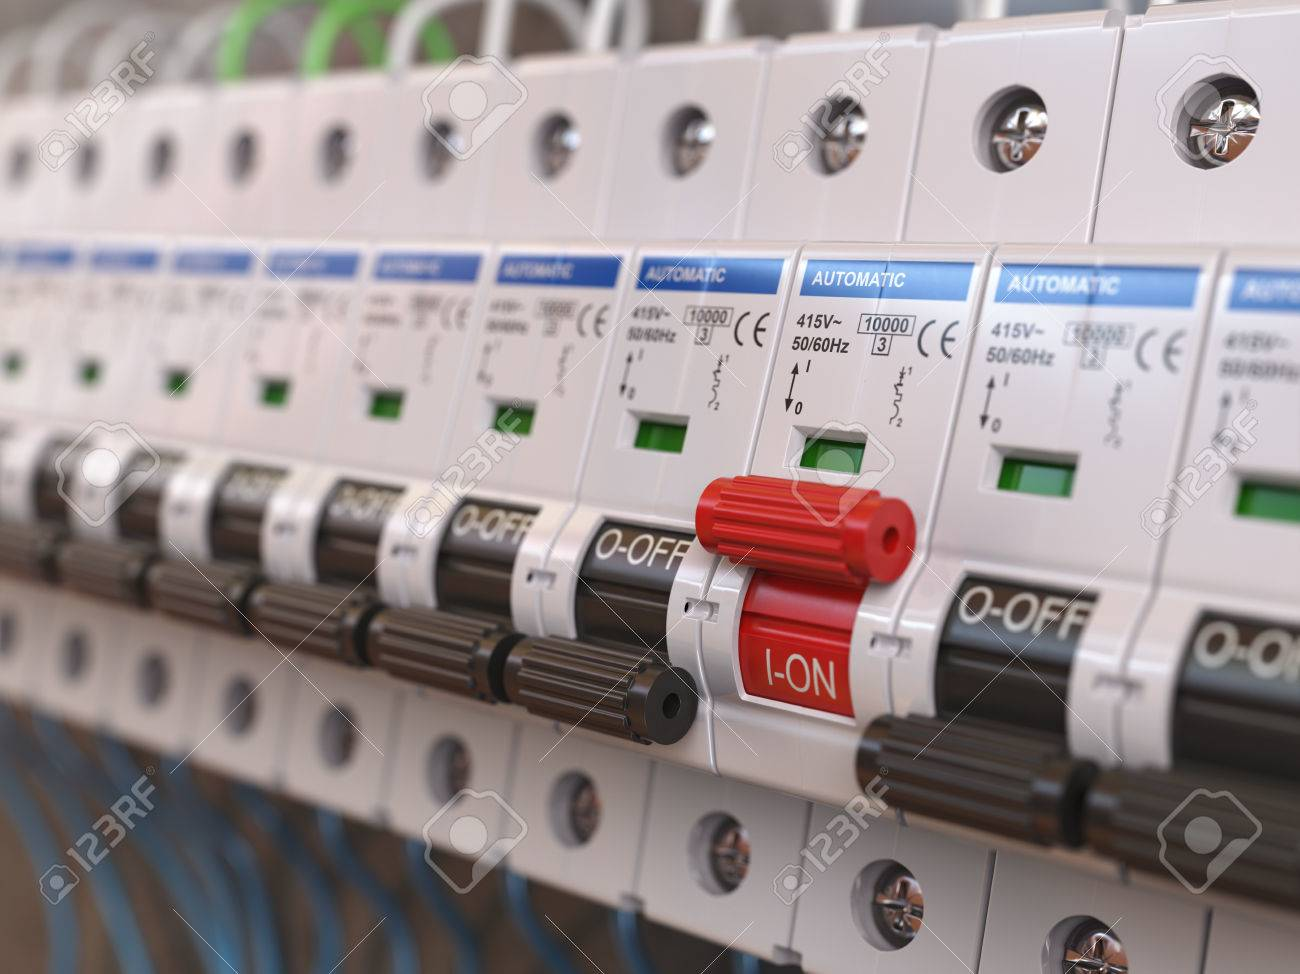 hight resolution of fuse box switch is red wiring diagram source red light on rv fuse box red fuse box